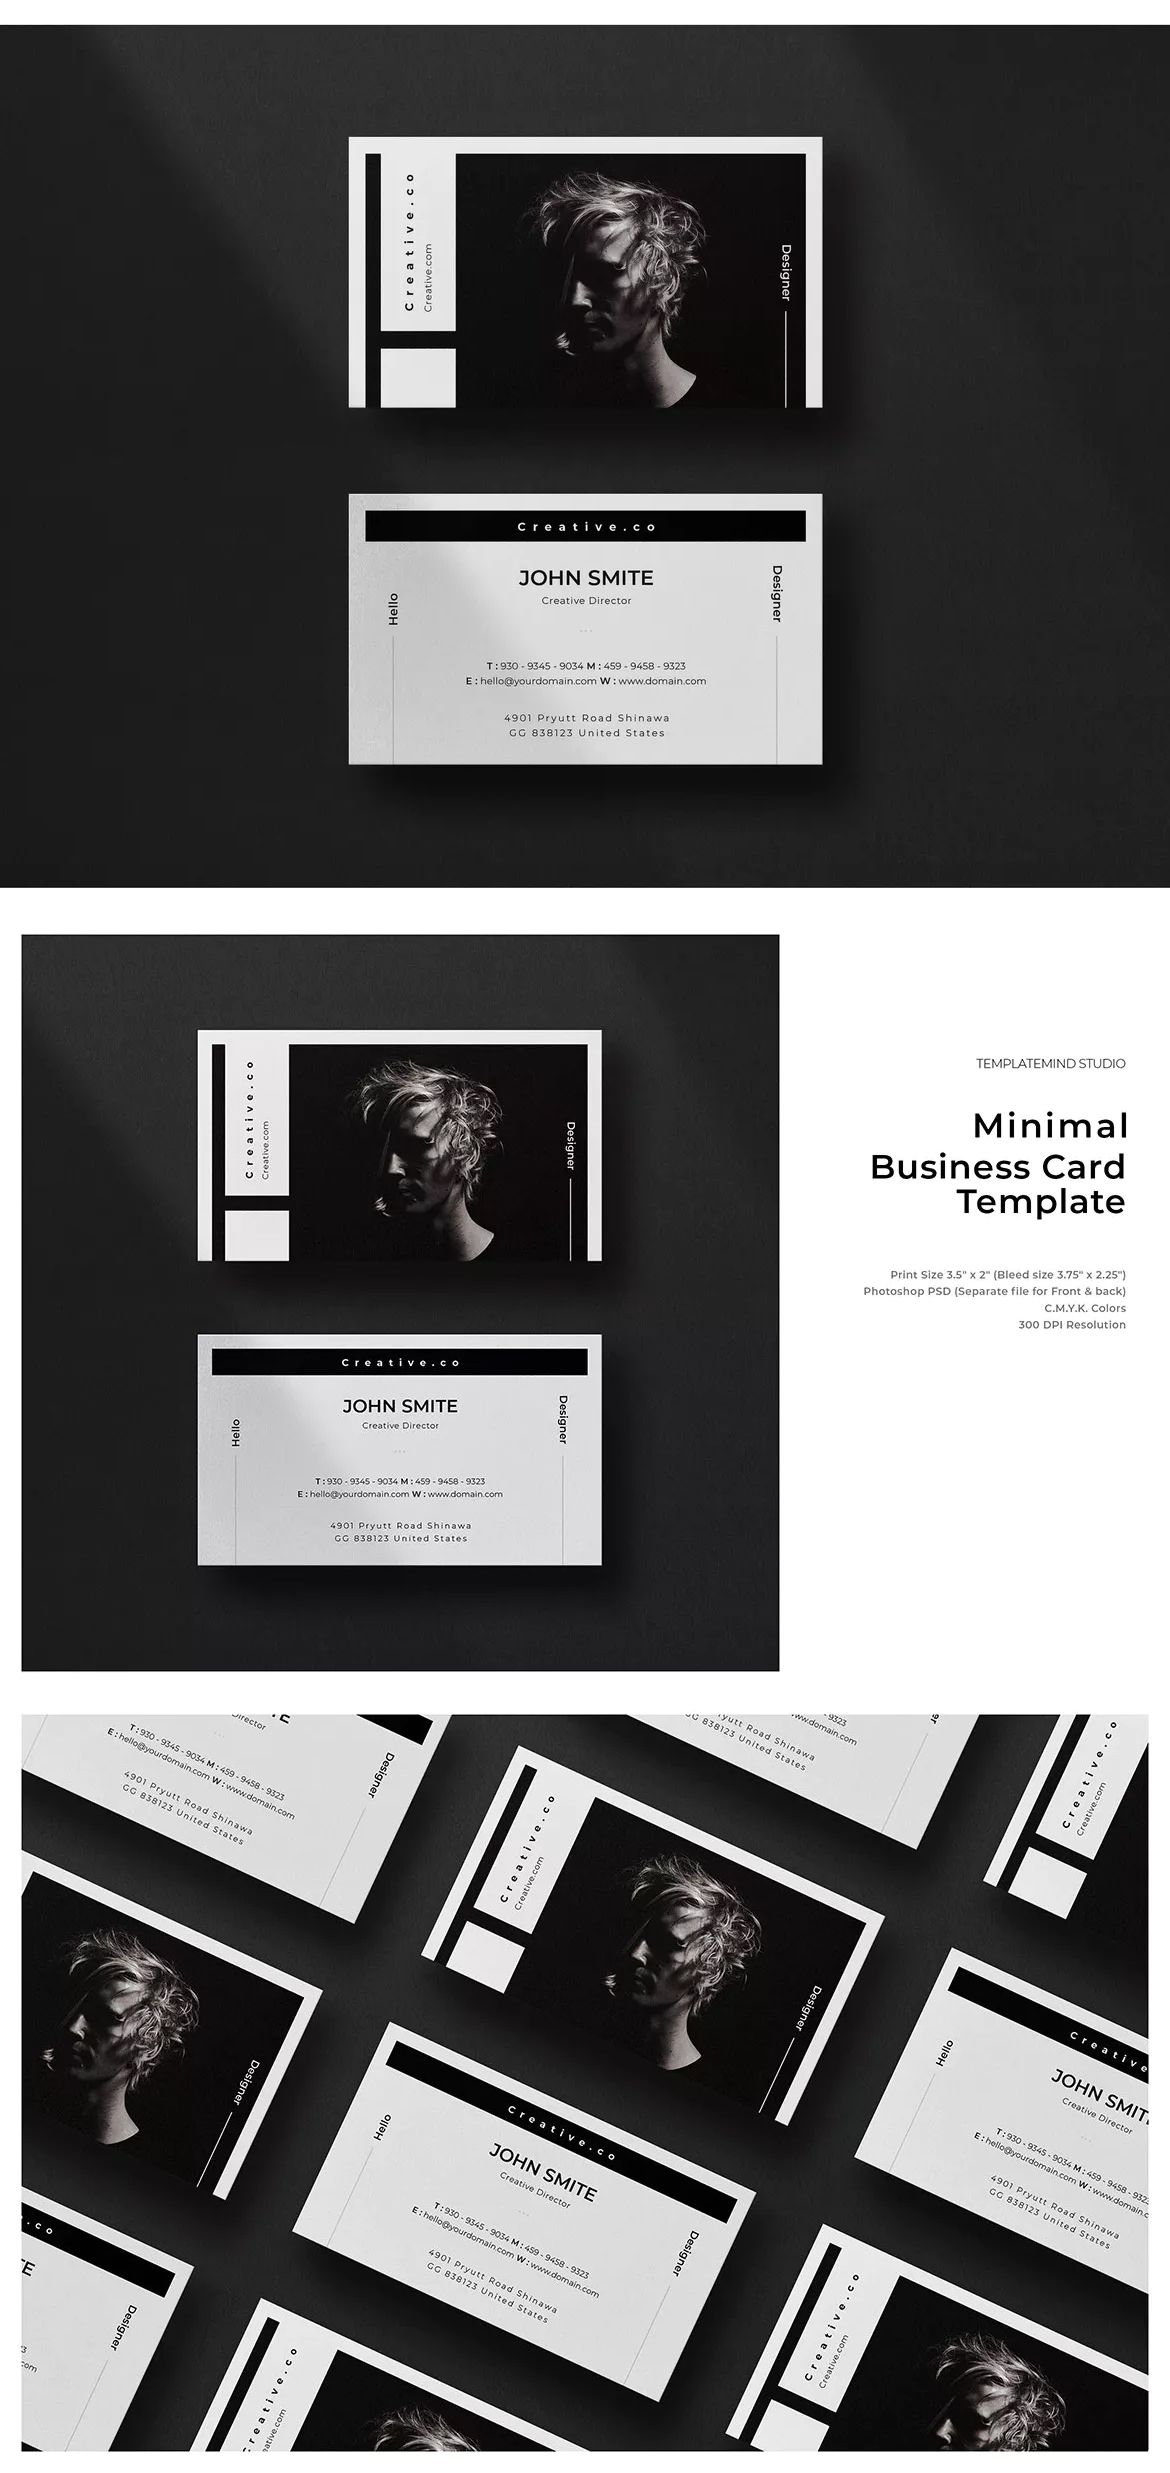 Minimal Business Card Vol 15 By Justicon On Envato Elements Business Card Template Psd Minimal Business Card Business Card Template